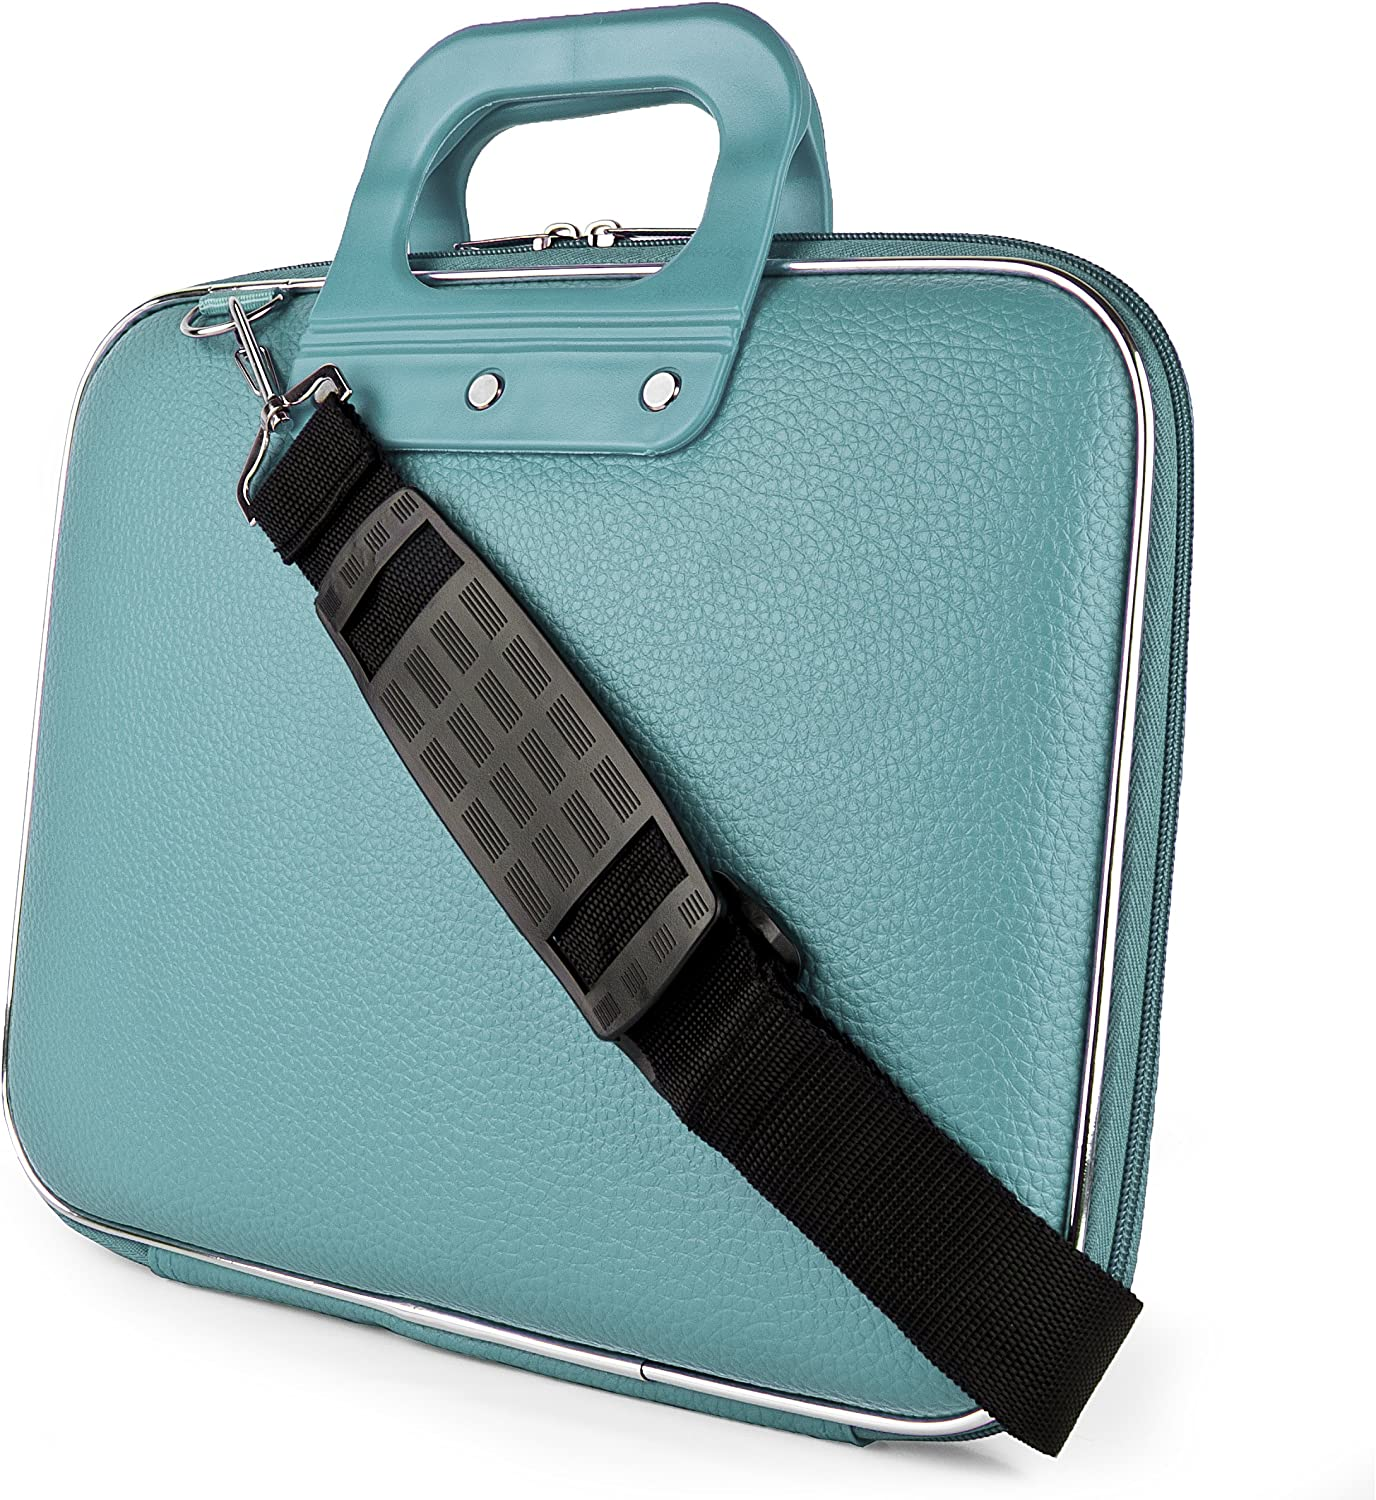 "Cady Shoulder Bag for 11.6-12.2"" Tablets/Laptops - MacBook, Surface, Galaxy, Chromebook, Inspiron, Aspire, IdeaTab, & Others"